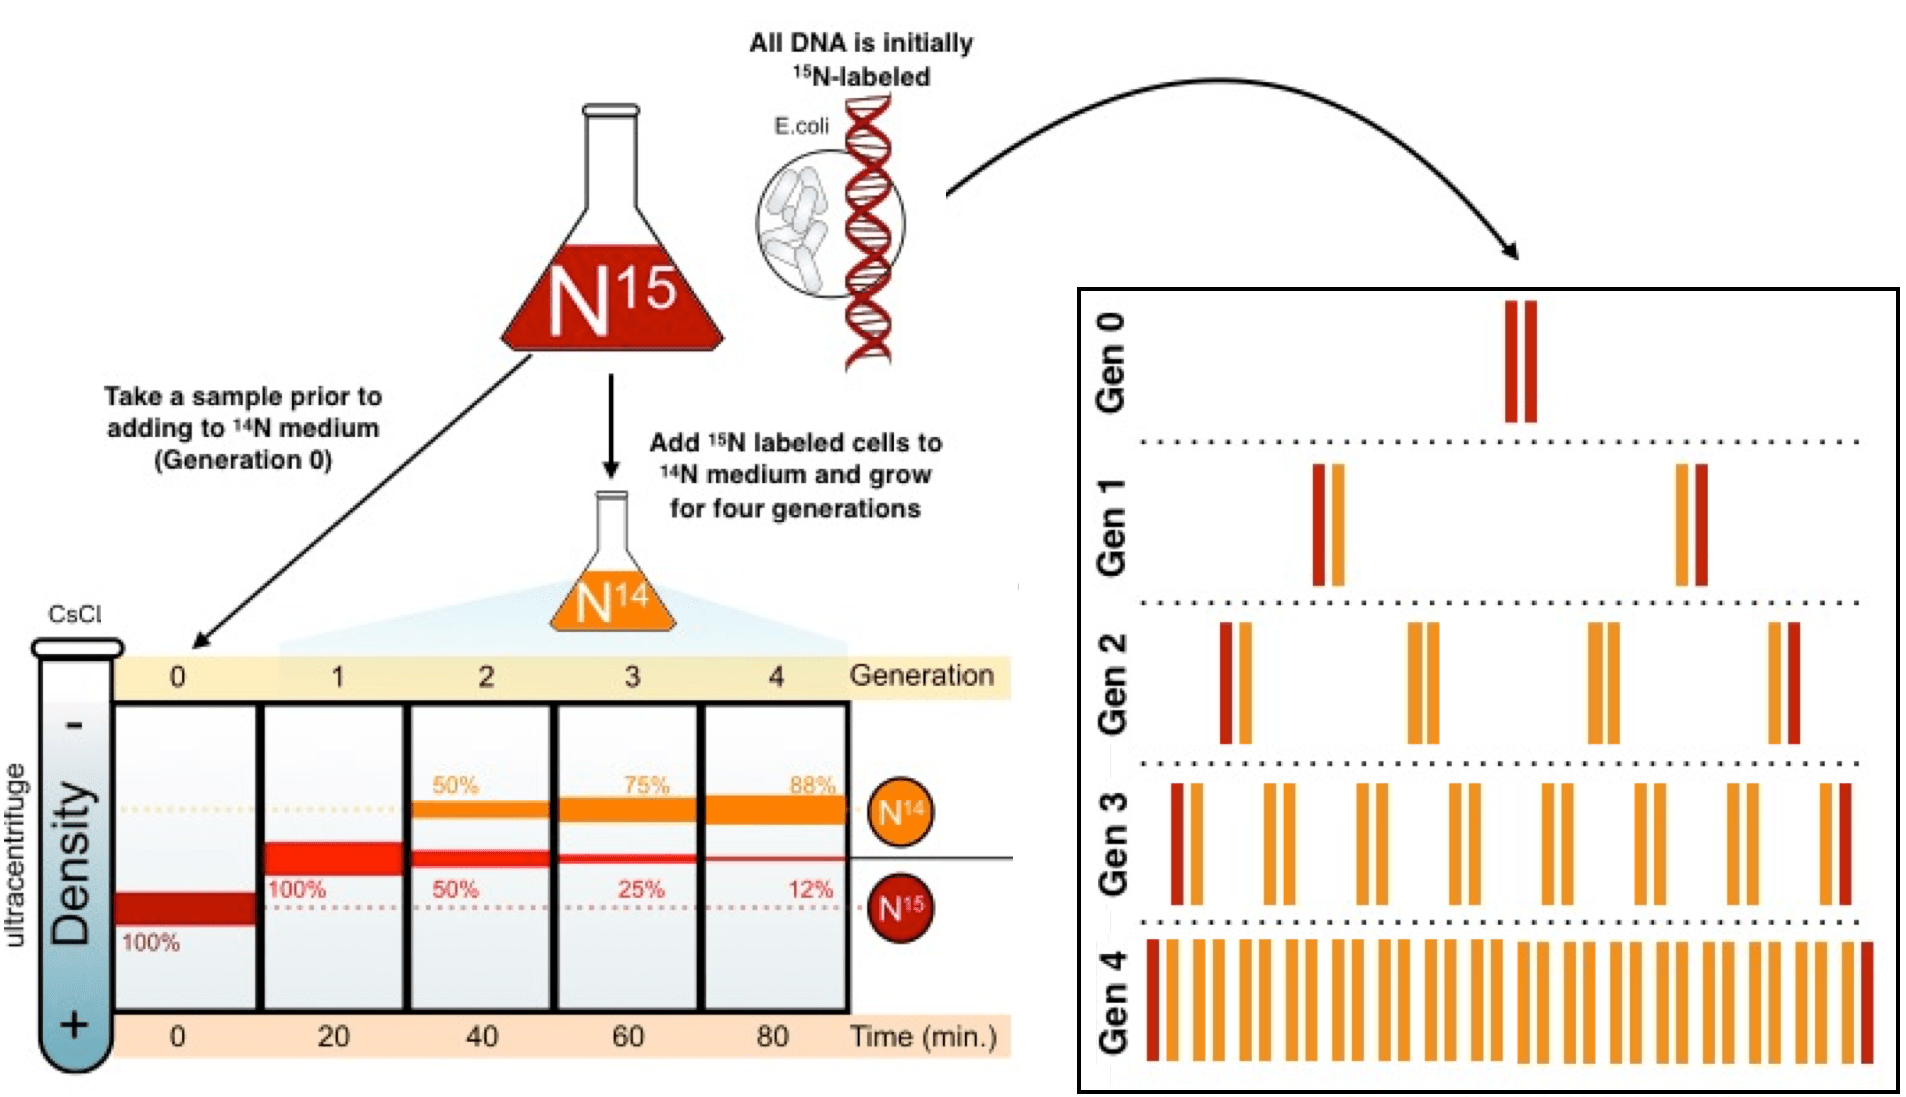 hight resolution of diagram of the meselson stahl experiment all dna is initially nitrogen 15